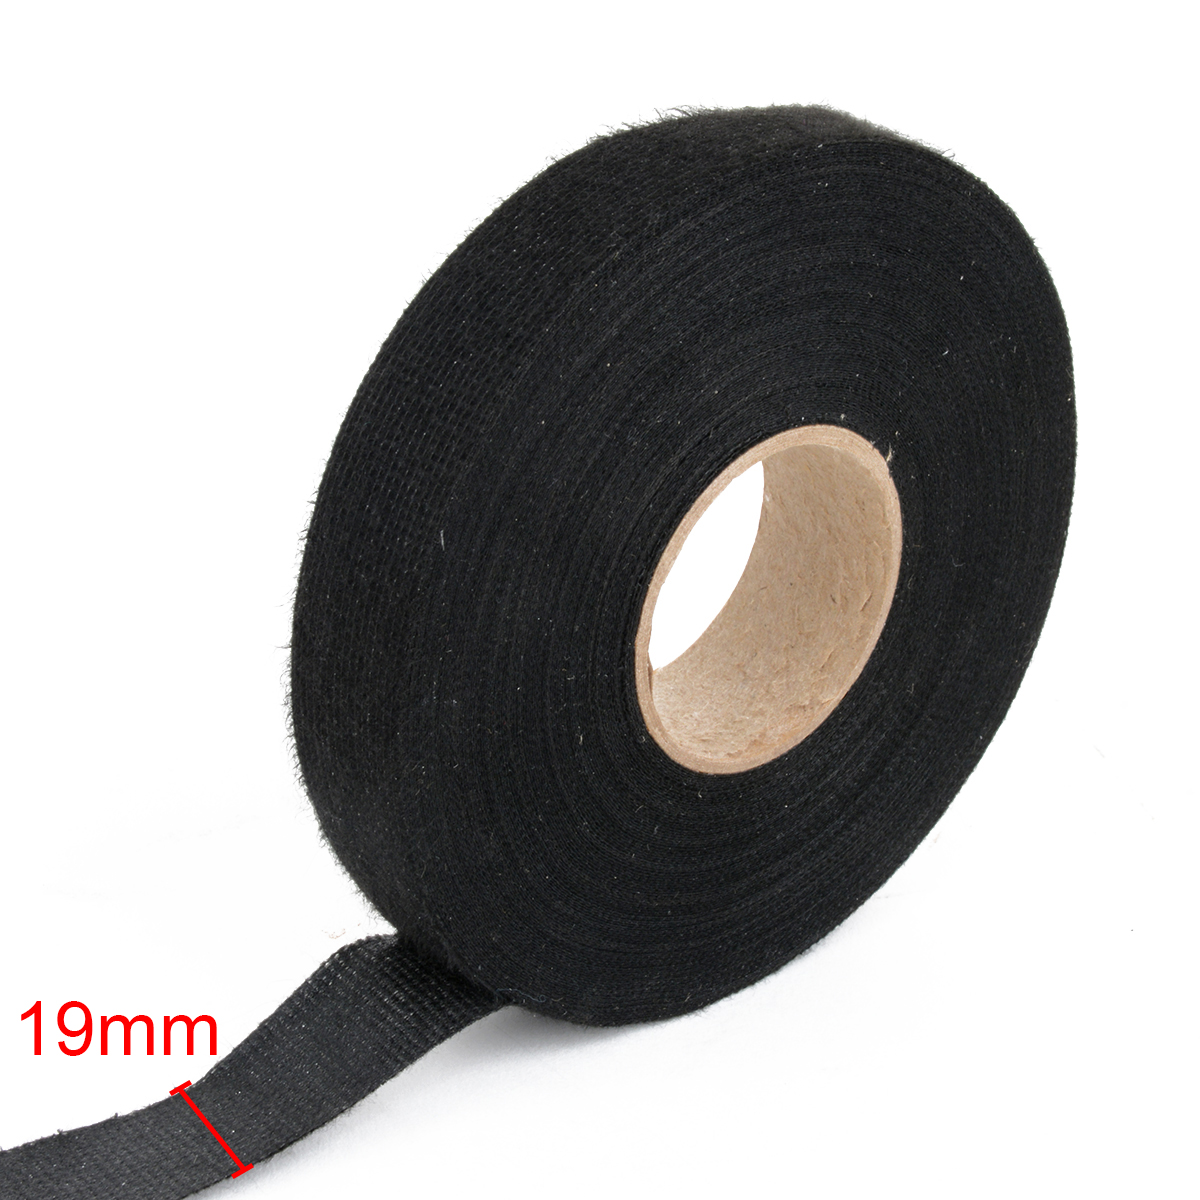 1pcs 19mmx15m fabric cloth tape automotive wiring harness glue high 4pcs lot wiring hardness tape 19mmx25m heat resistant adhesive cloth fabric tape cable looms protection